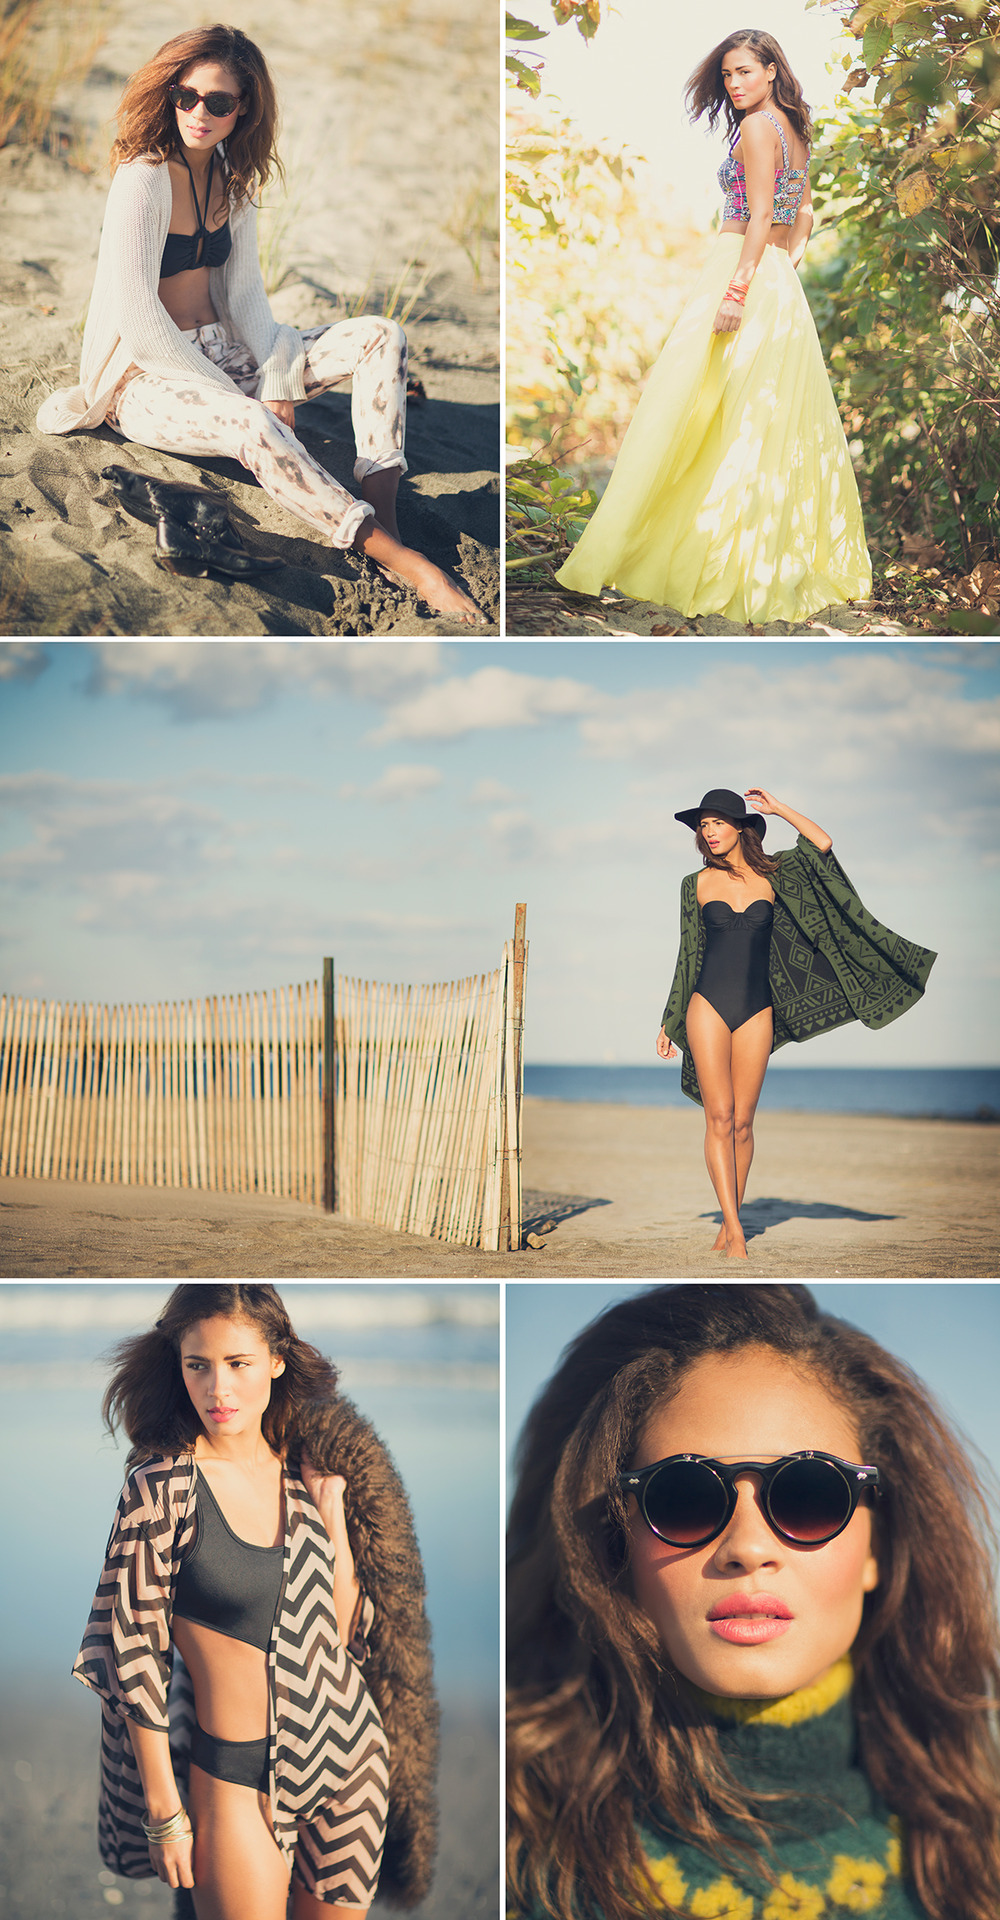 """Endless Summer""   Photography: Bri Johnson   Hair/MUA: Maria Yeye   Stylist: Karlyn Waldschmidt   Model: Ana Paula (Q Management)"